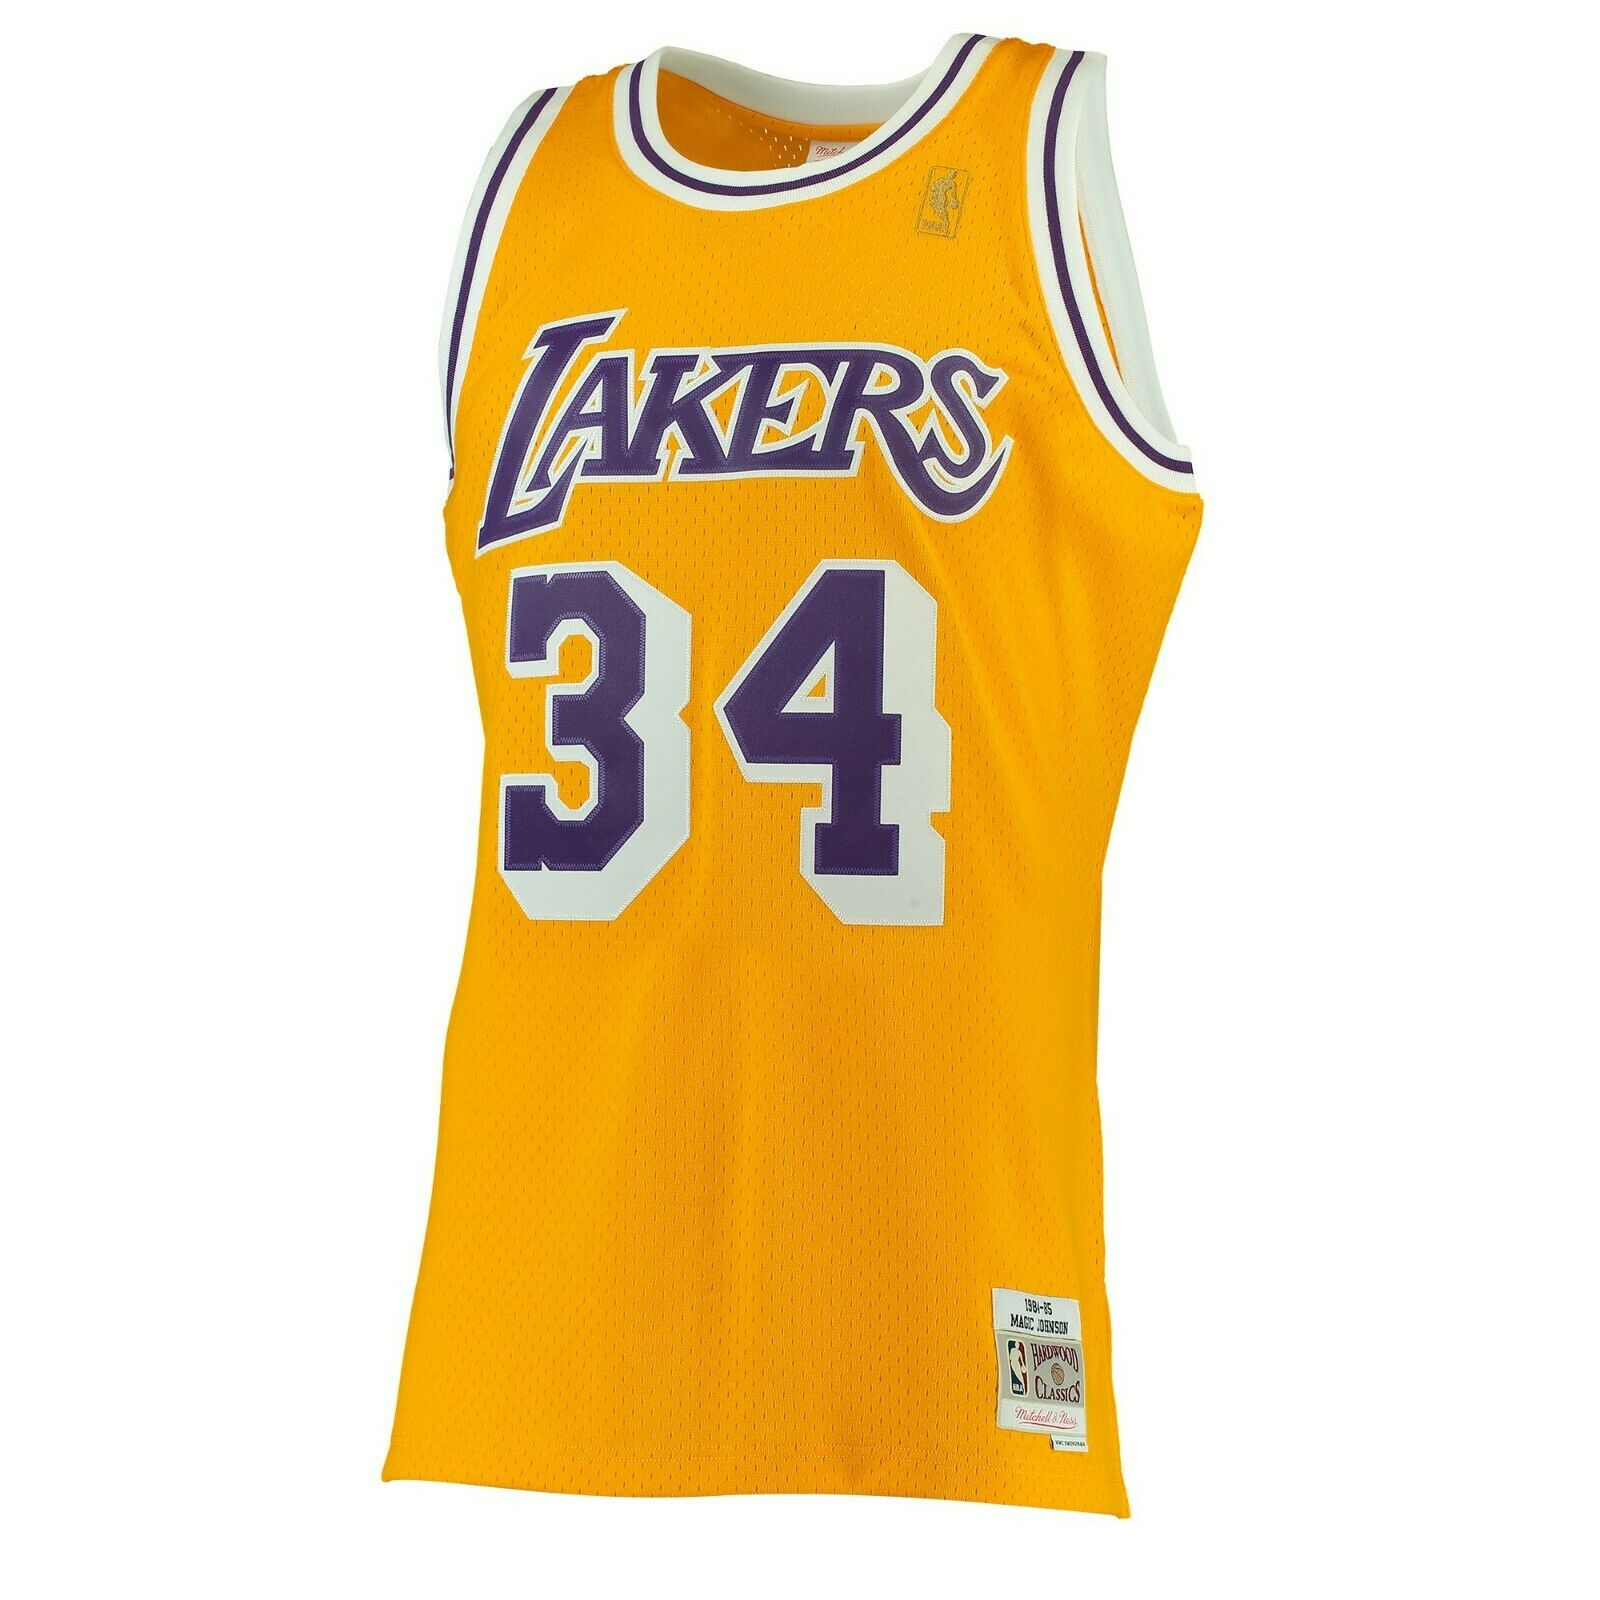 huge selection of 604dc b78dd Shaquille O neal  34 Los Angeles Lakers Mitchell Ness NBA Swingman Jersey  Yellow